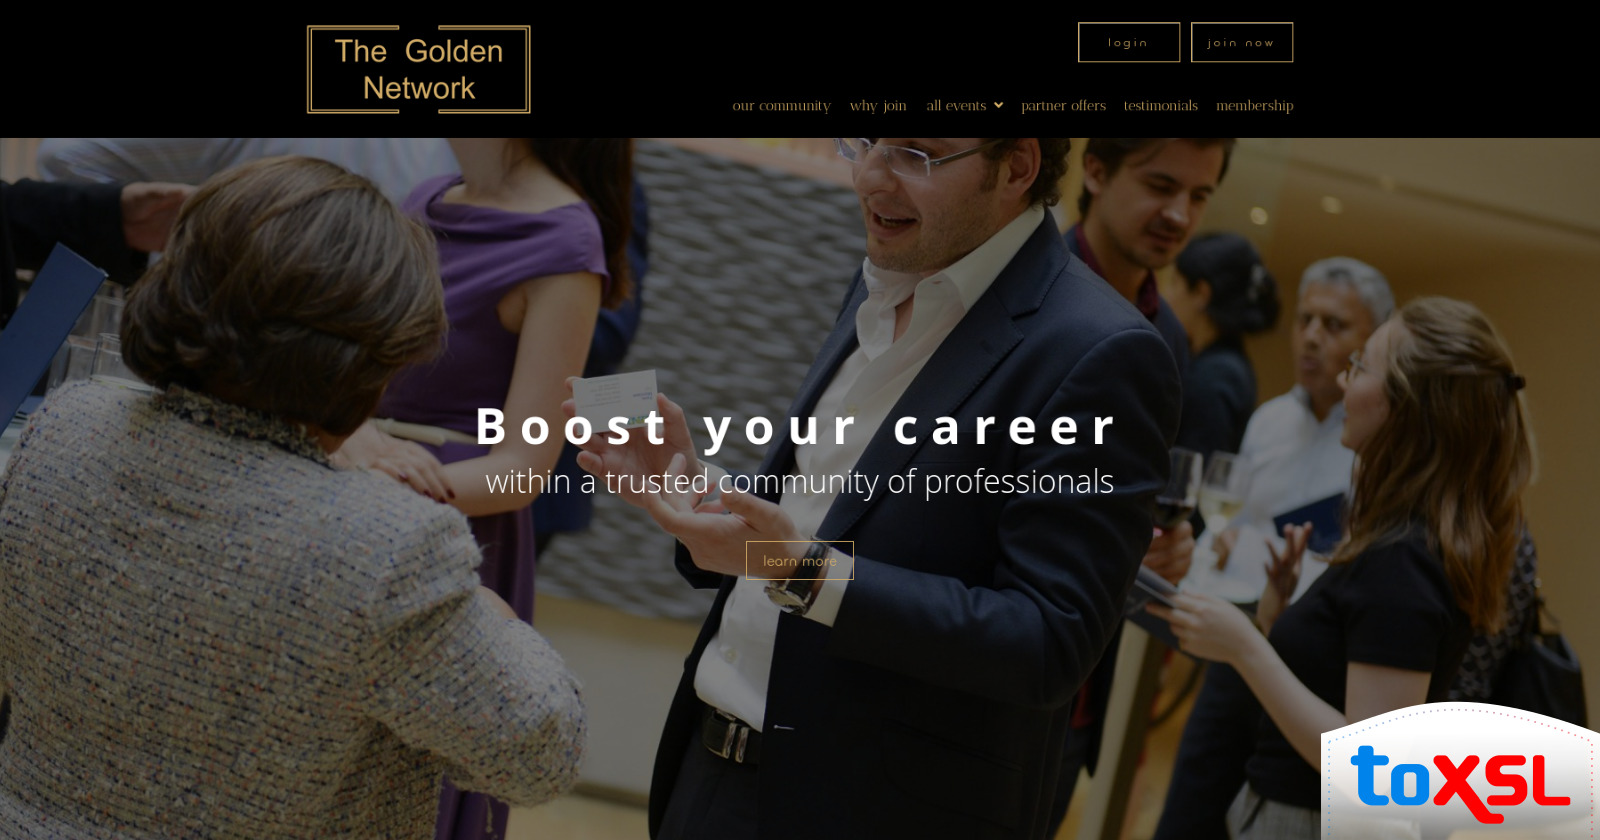 ToXSL Technologies Delivered the Website: The Golden Network